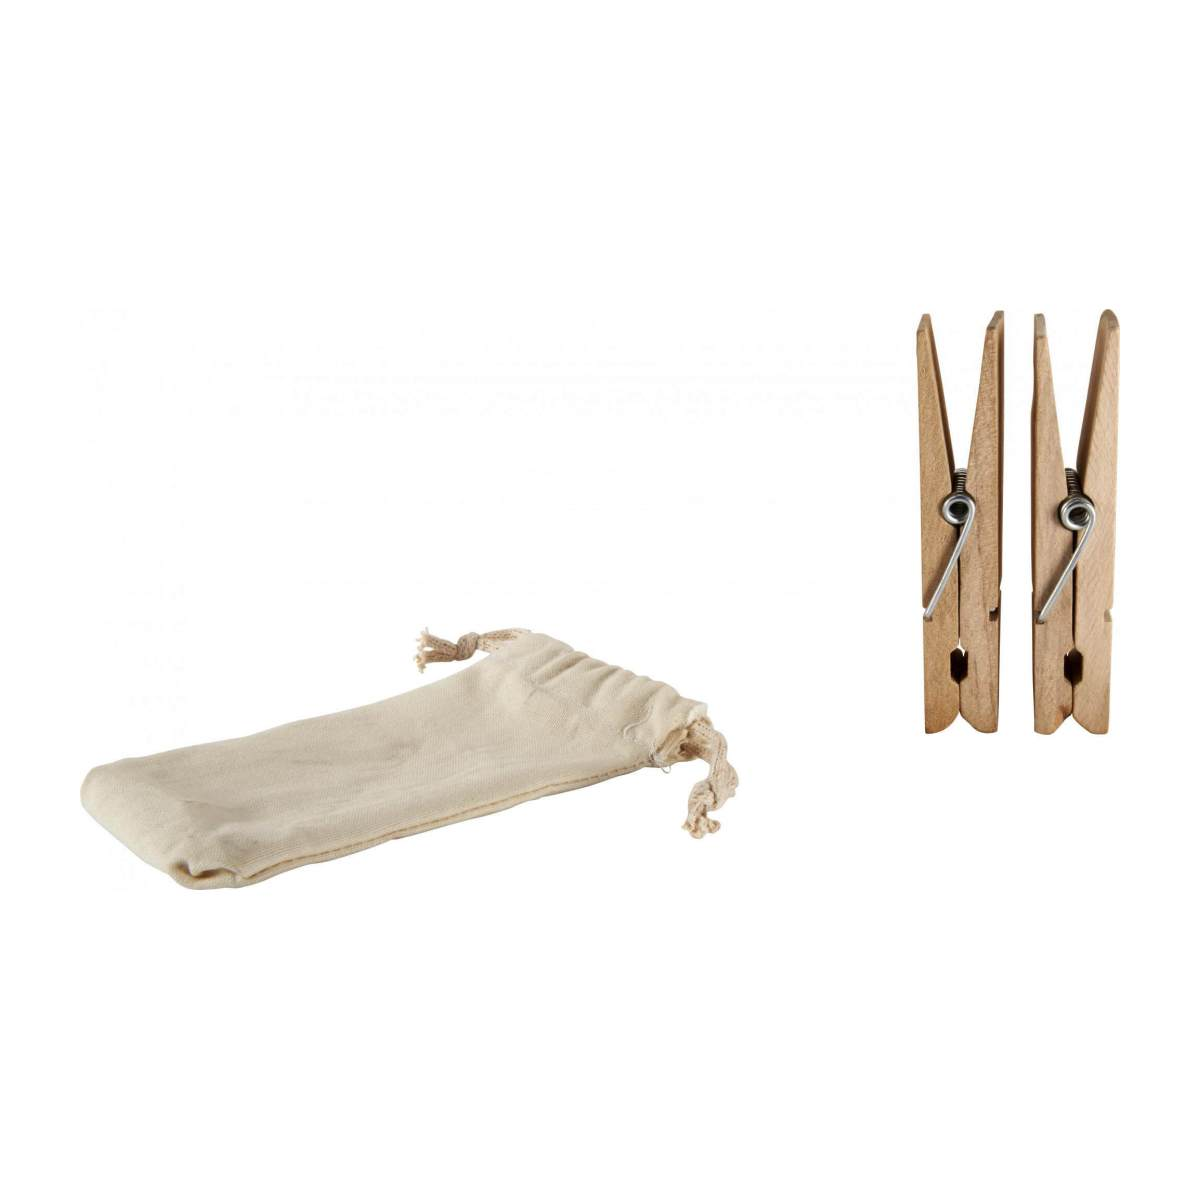 2 wooden clothes pegs n°2